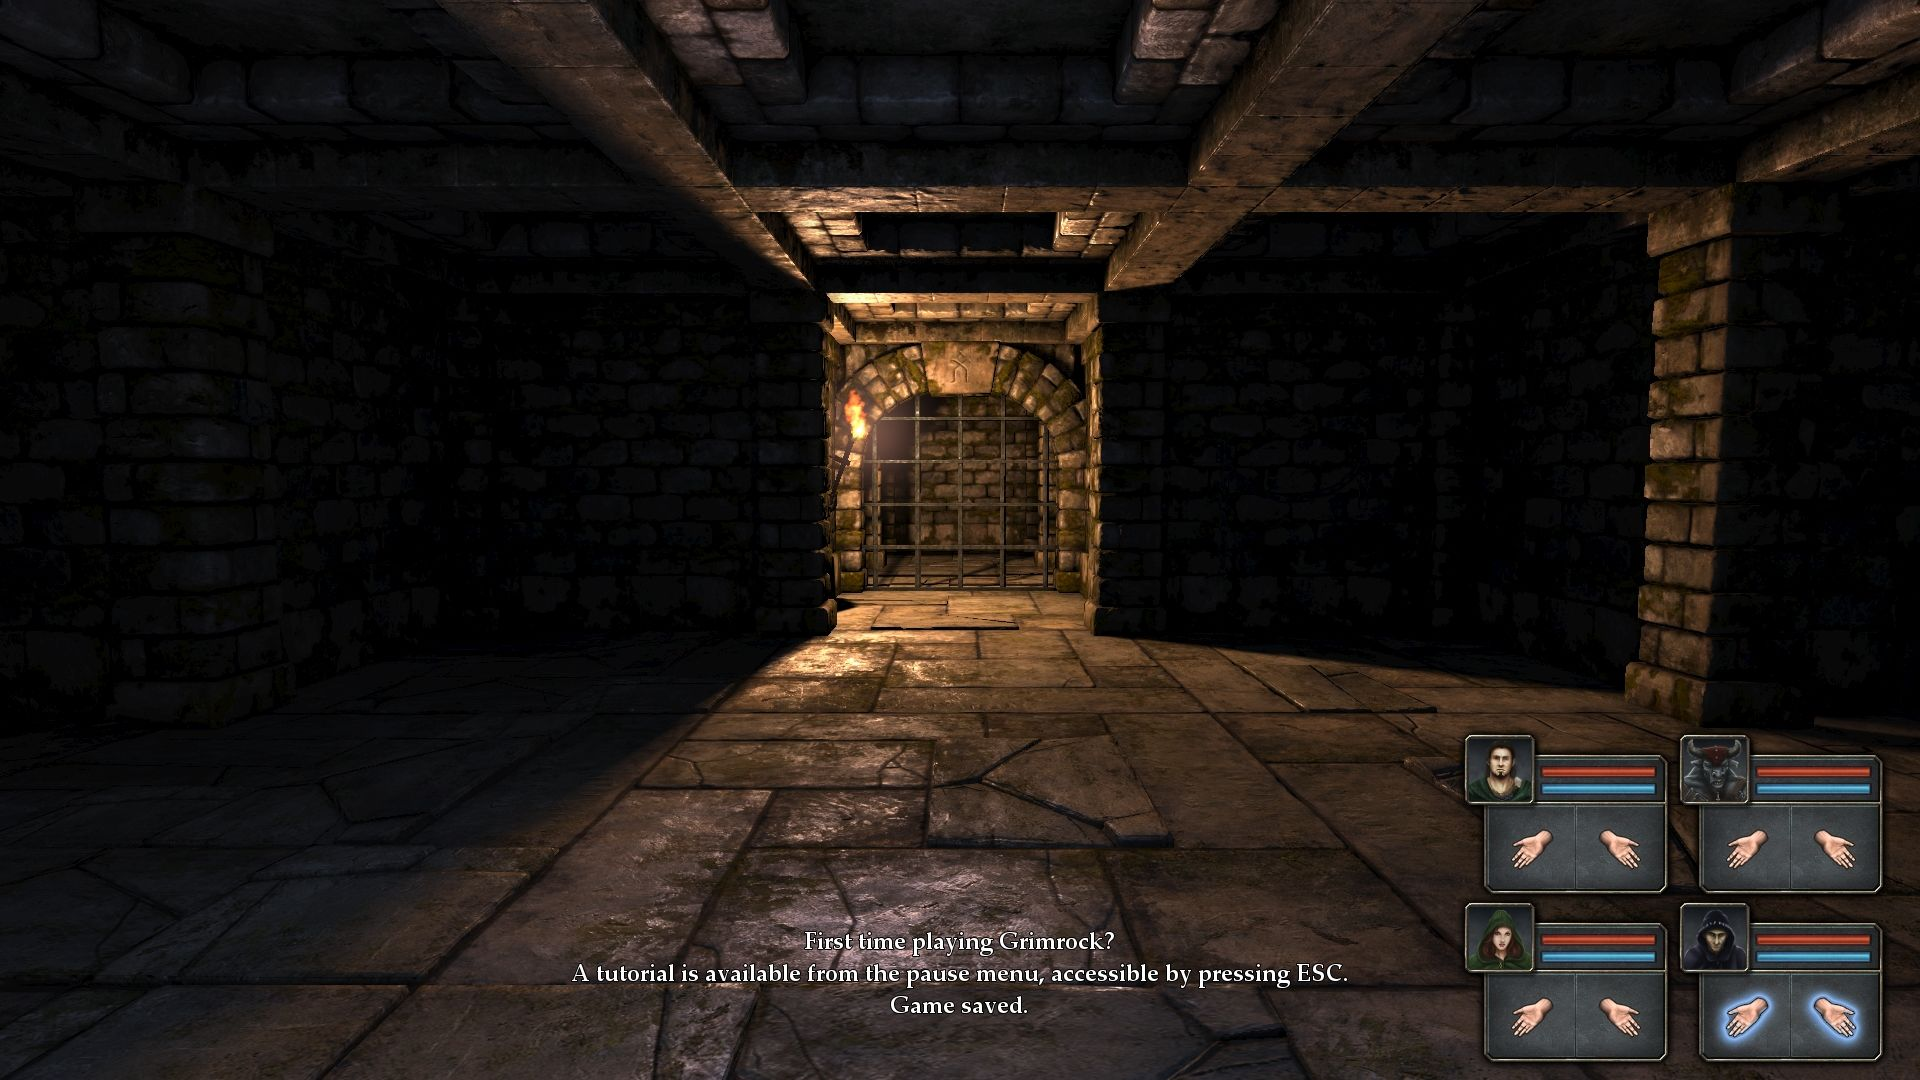 Legend of Grimrock Windows Tutorial